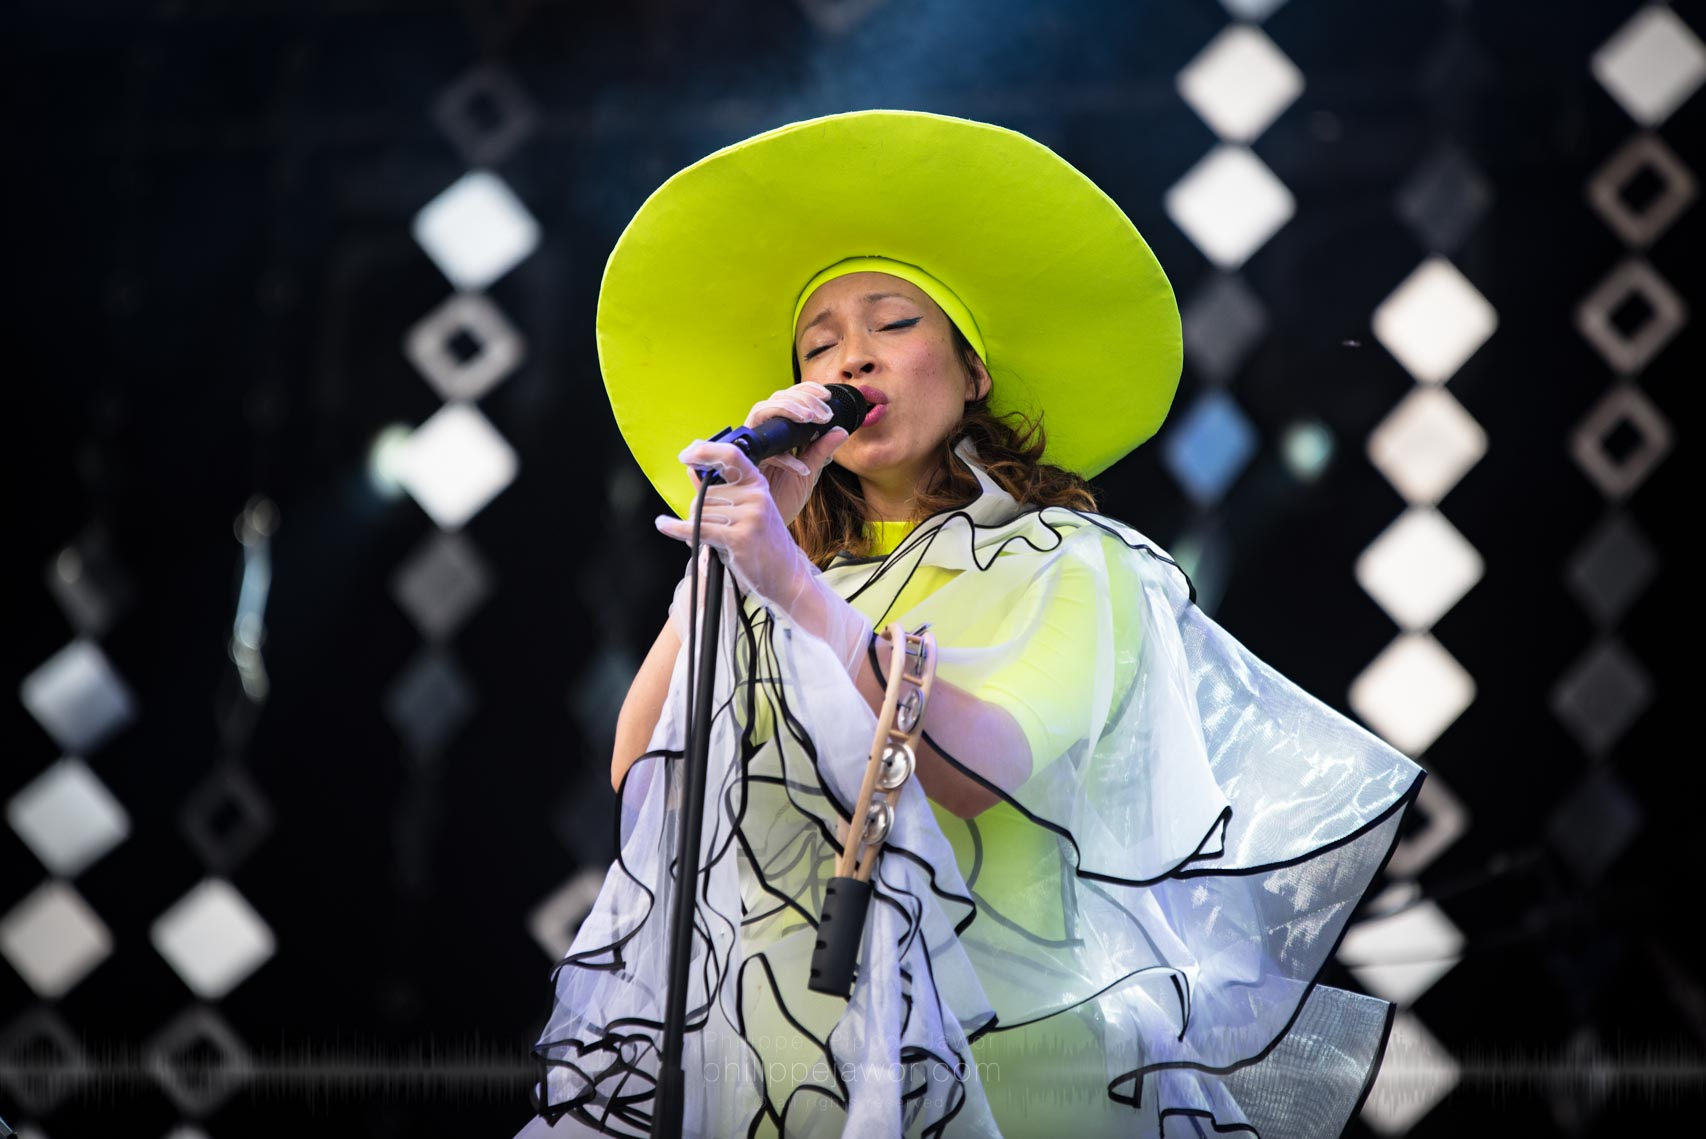 The Swedish electronic music band Little Dragon, live at Rock en Seine festival, Paris, France, August 2017.  On assignment for ZYVA magazine All rights reserved.